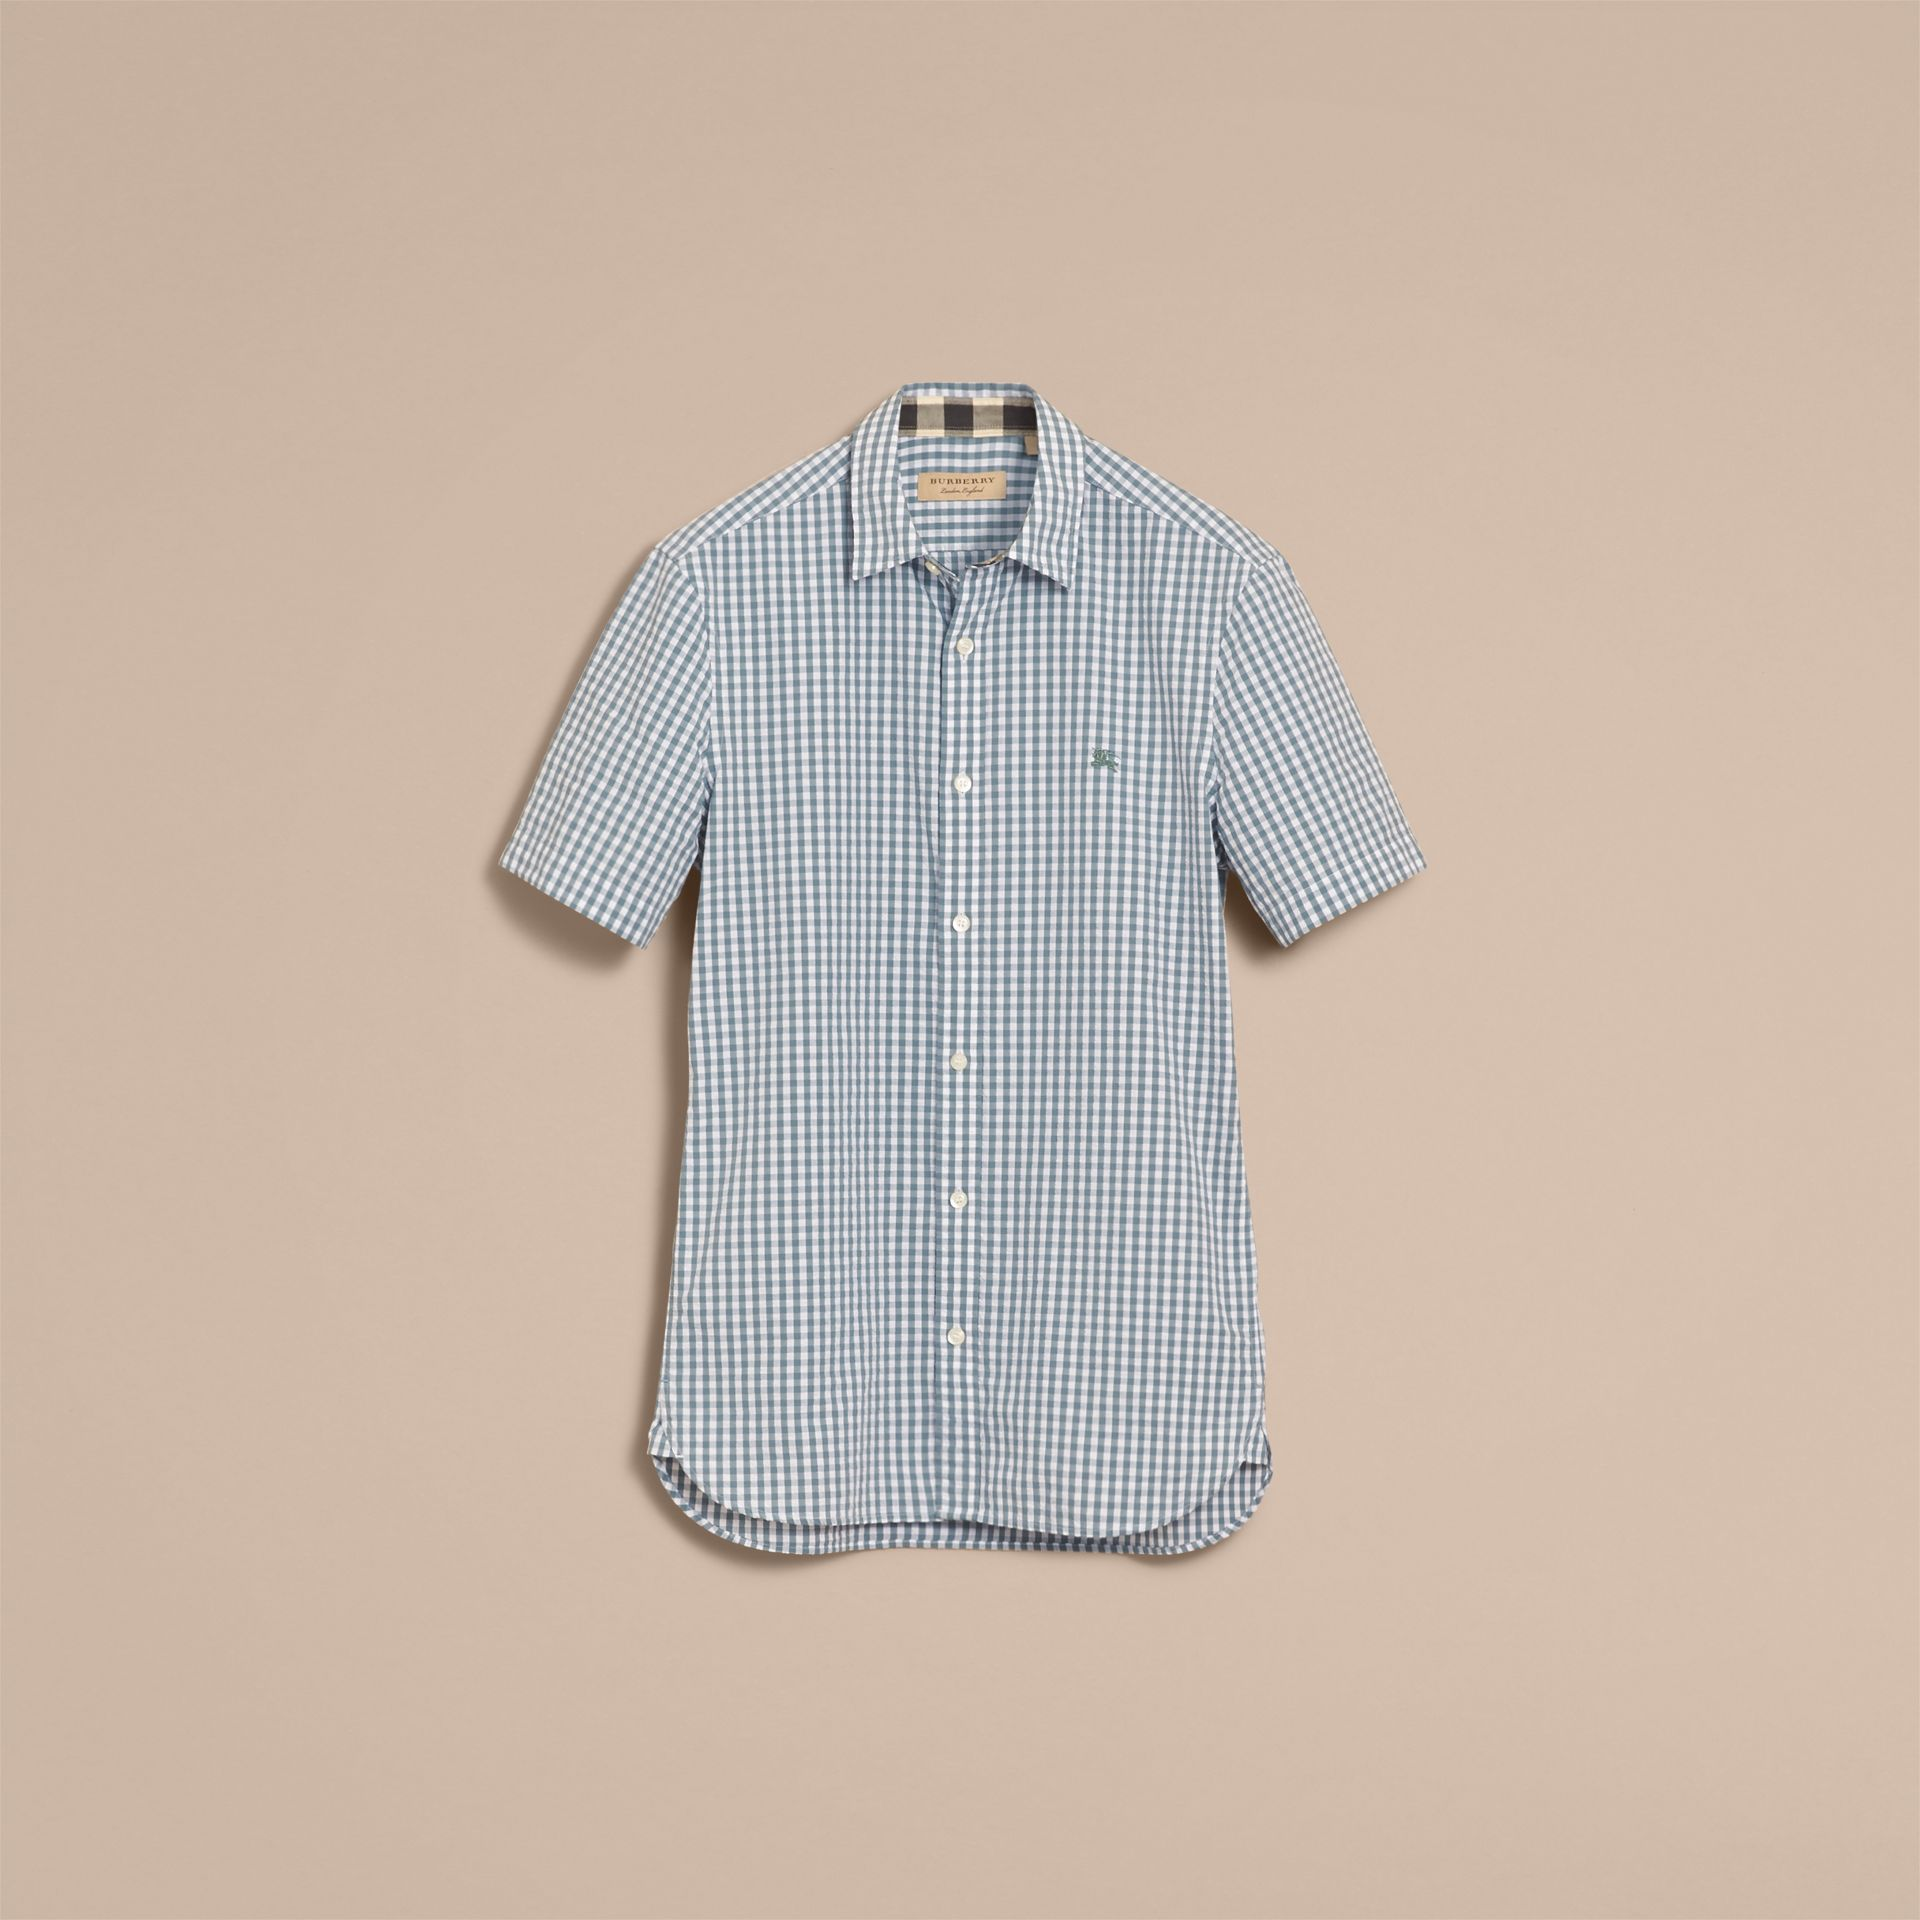 Short-sleeved Gingham Cotton Poplin Shirt in Dusty Teal Blue - Men | Burberry - gallery image 4